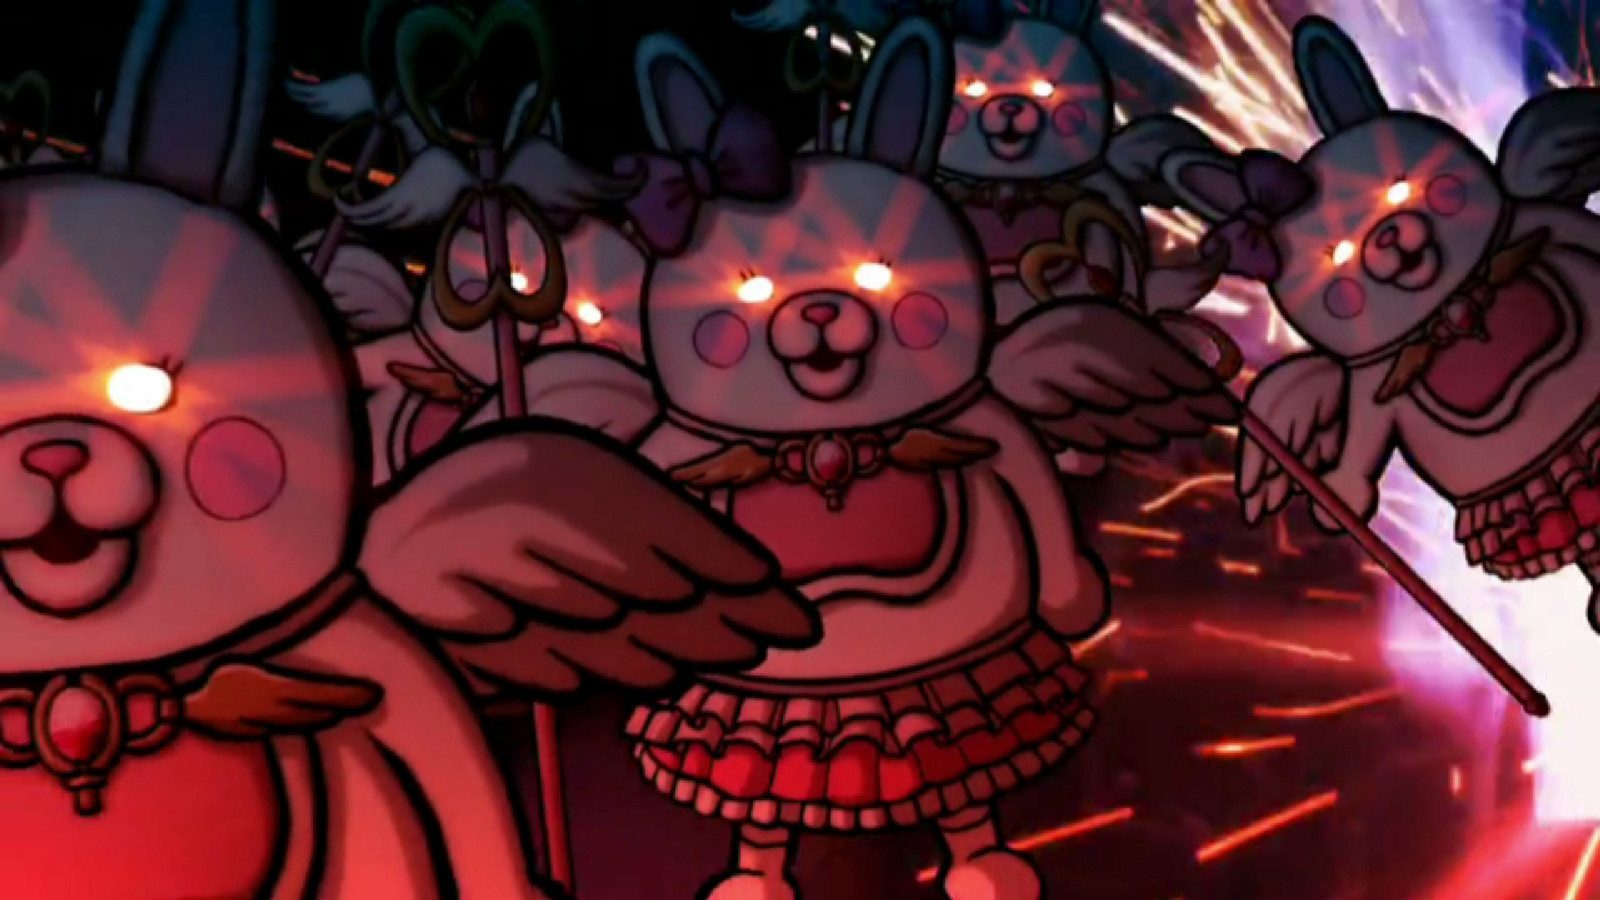 Danganronpa 3 In Development Still In Its Very Early